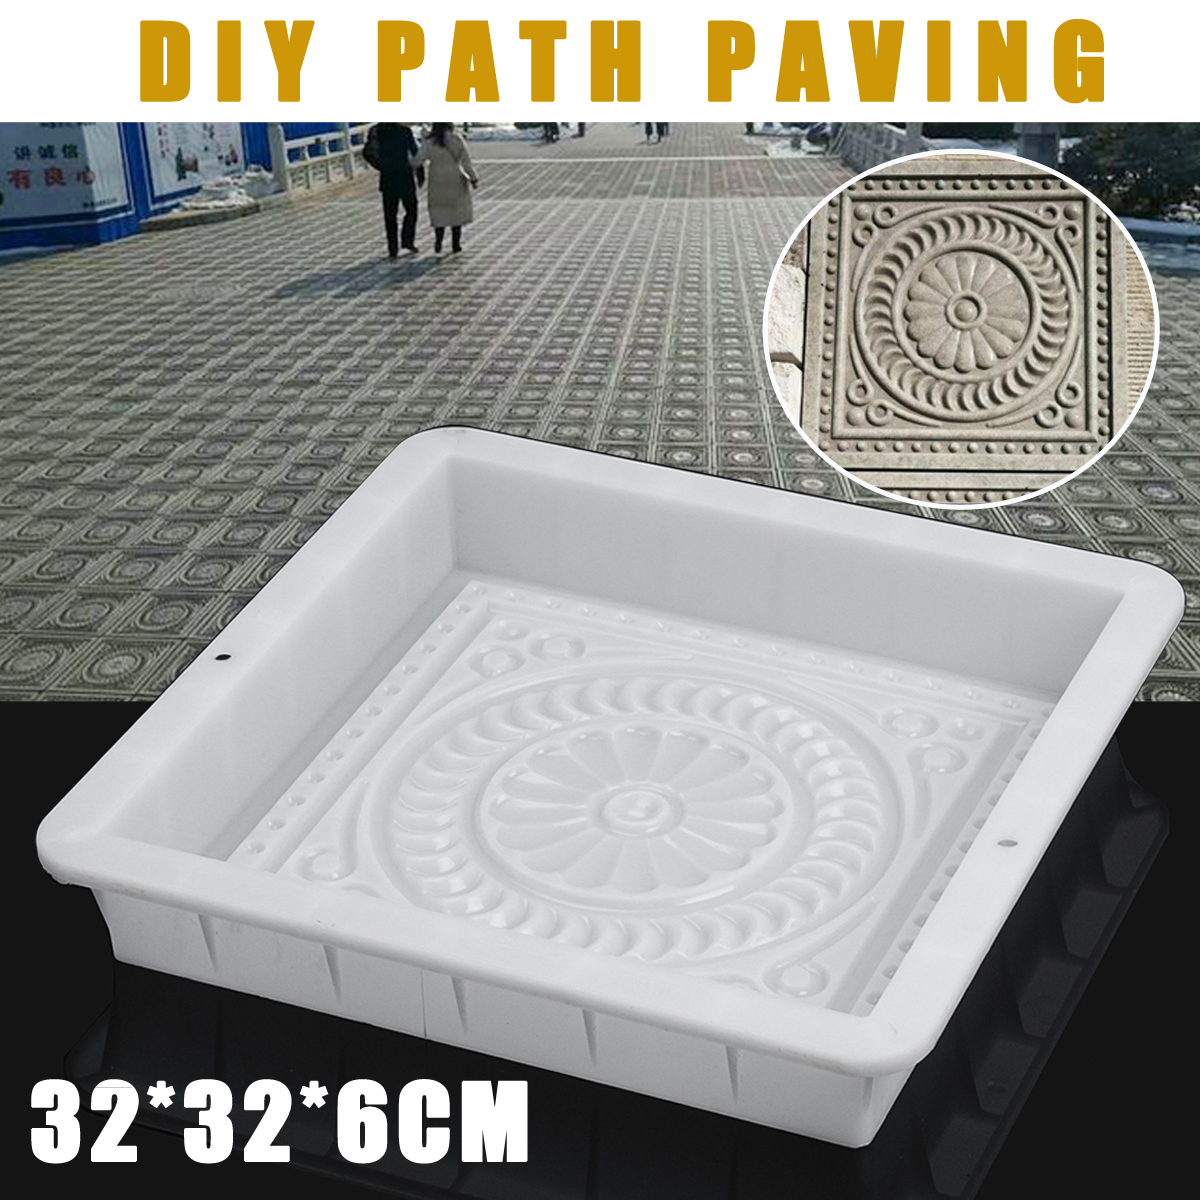 Outdoor Courtyard Garden Stone Road Walk Maker DIY Manually Path Paving Maker Flower Mold Imitation Brick Carving Pavement Tool